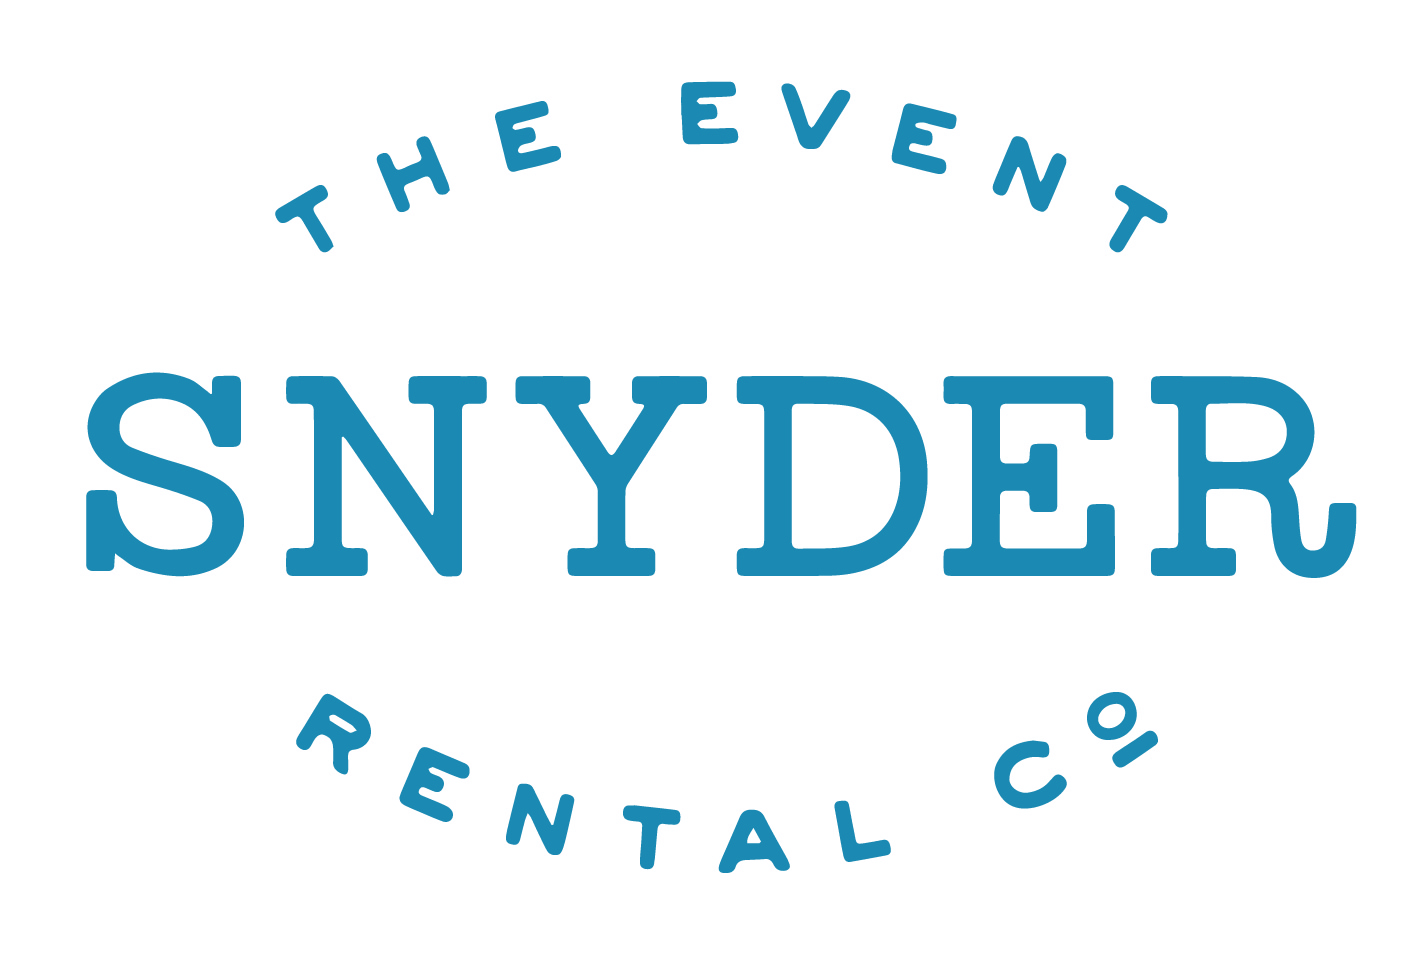 Snyder - The Event Rental Company (Supporting)